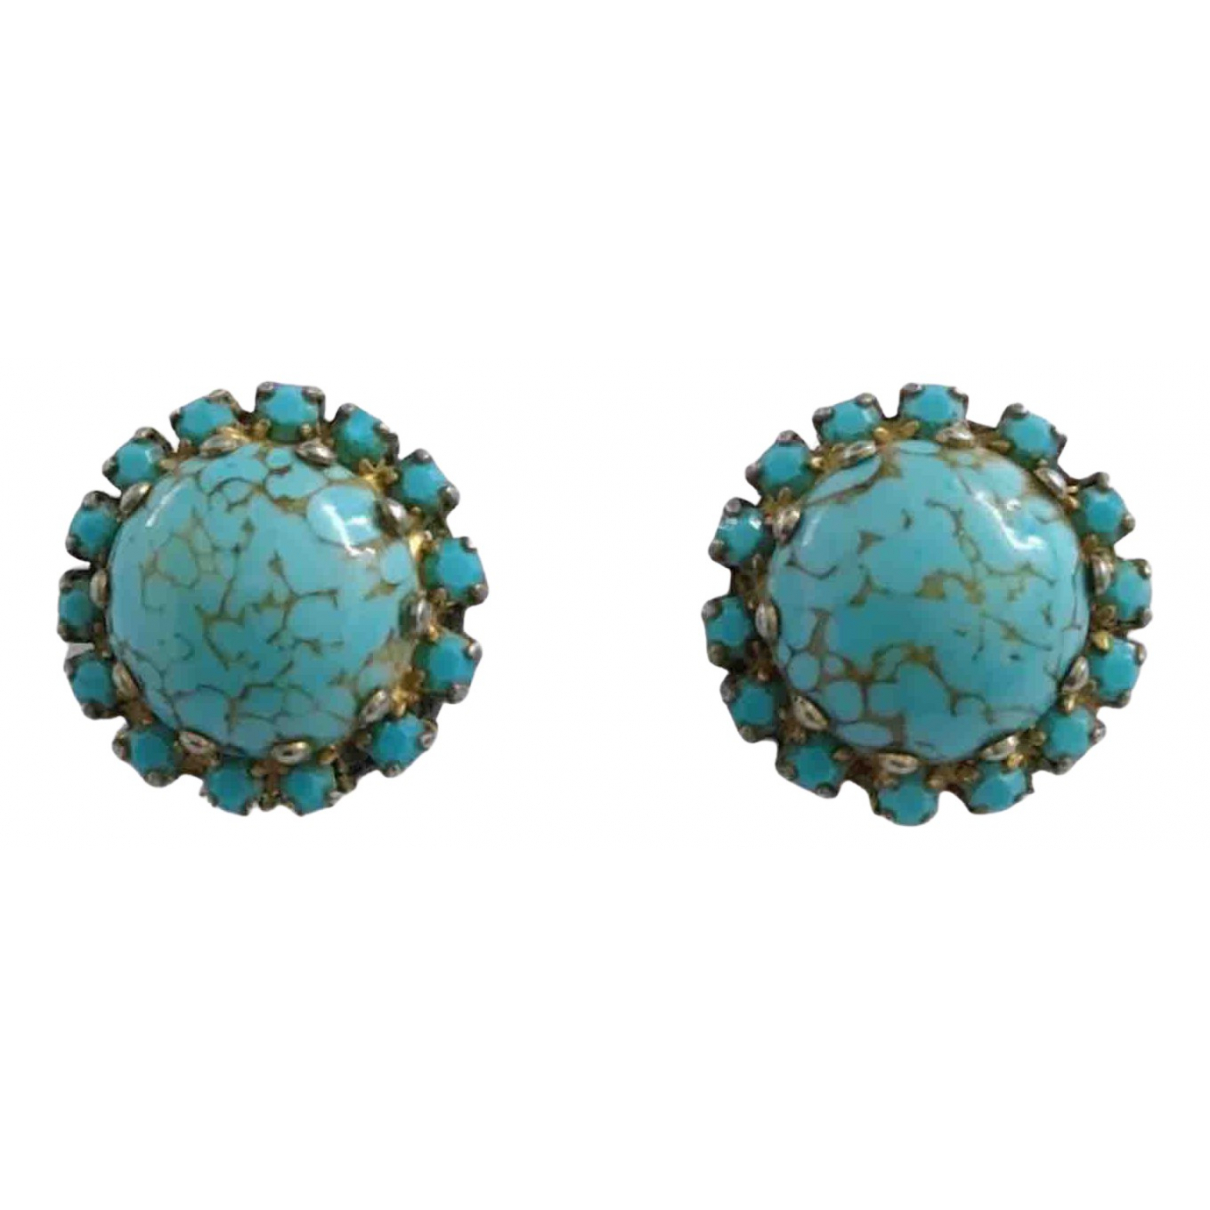 Non Signé / Unsigned Turquoises Turquoise Ceramic Earrings for Women N